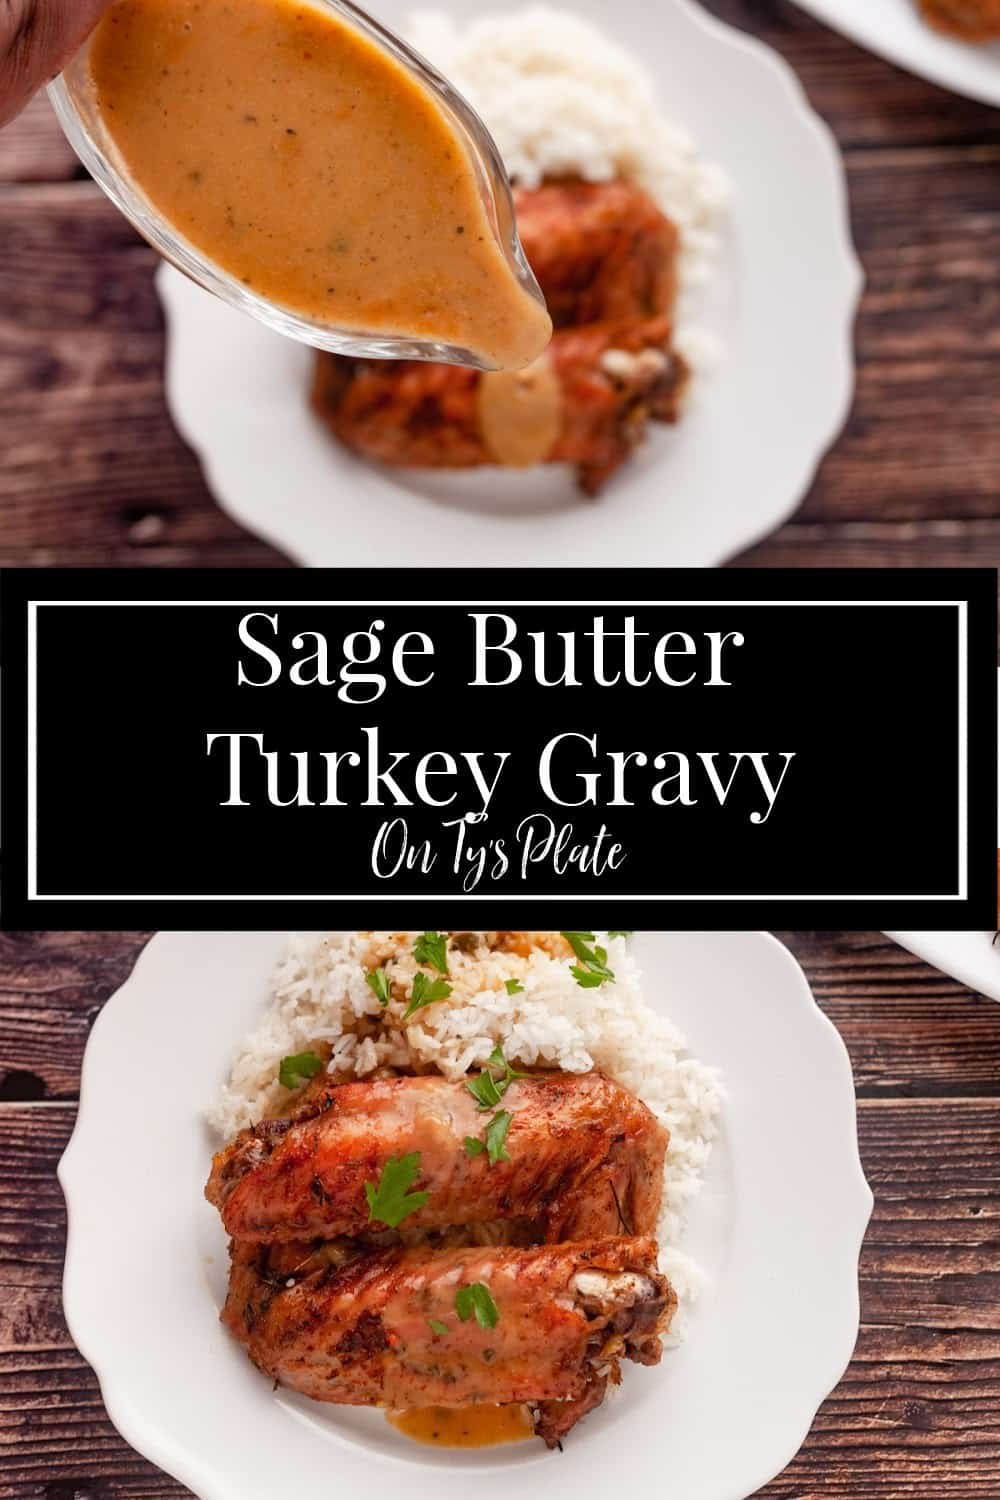 Sage Butter Turkey Gravy